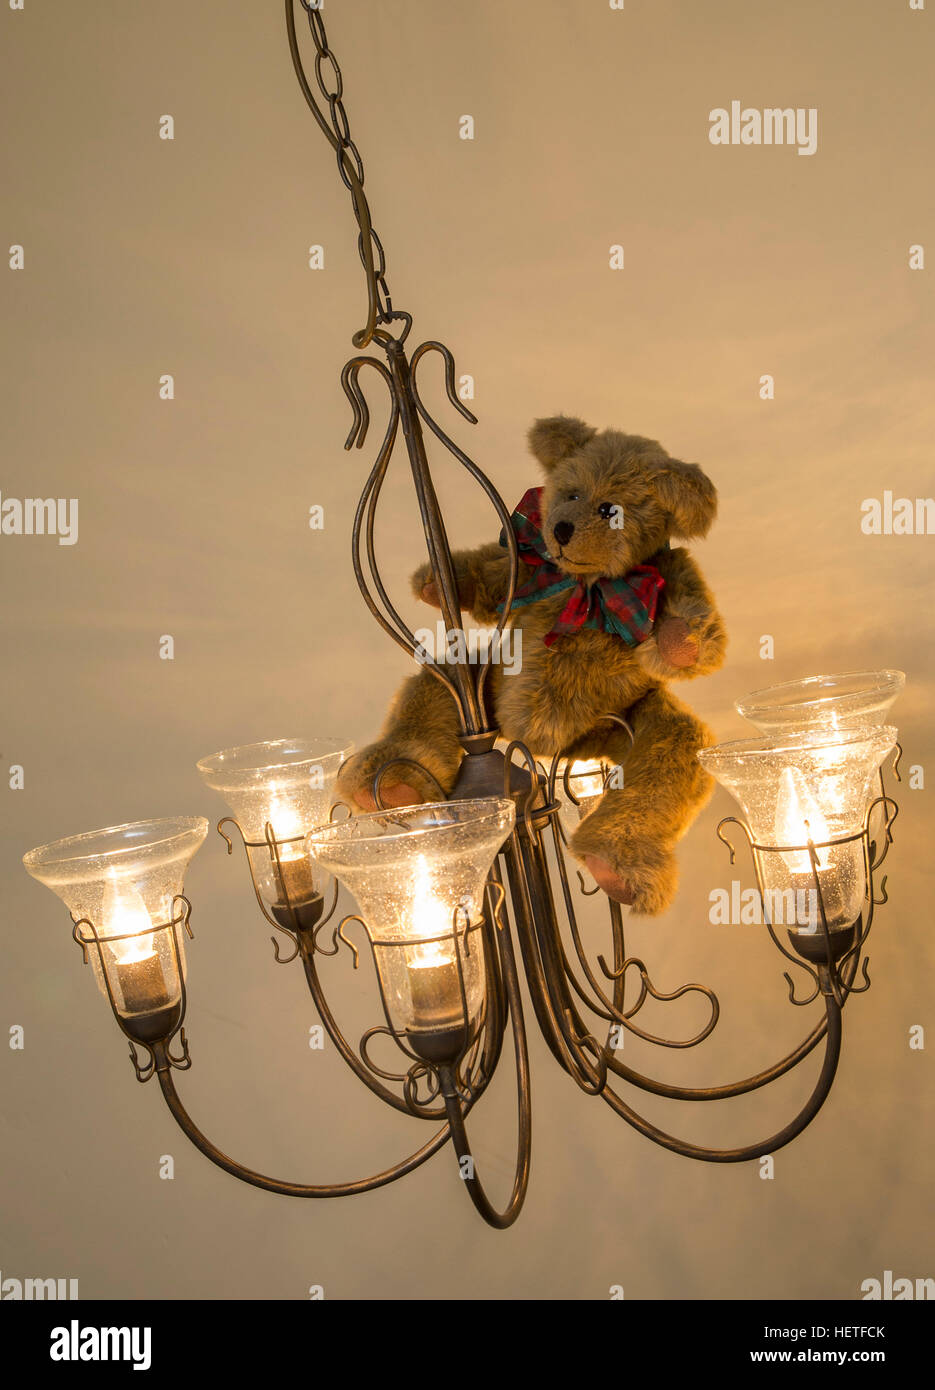 A chandelier stock photos a chandelier stock images alamy teddy bear wearing a christmas bow swinging from a chandelier stock image arubaitofo Choice Image